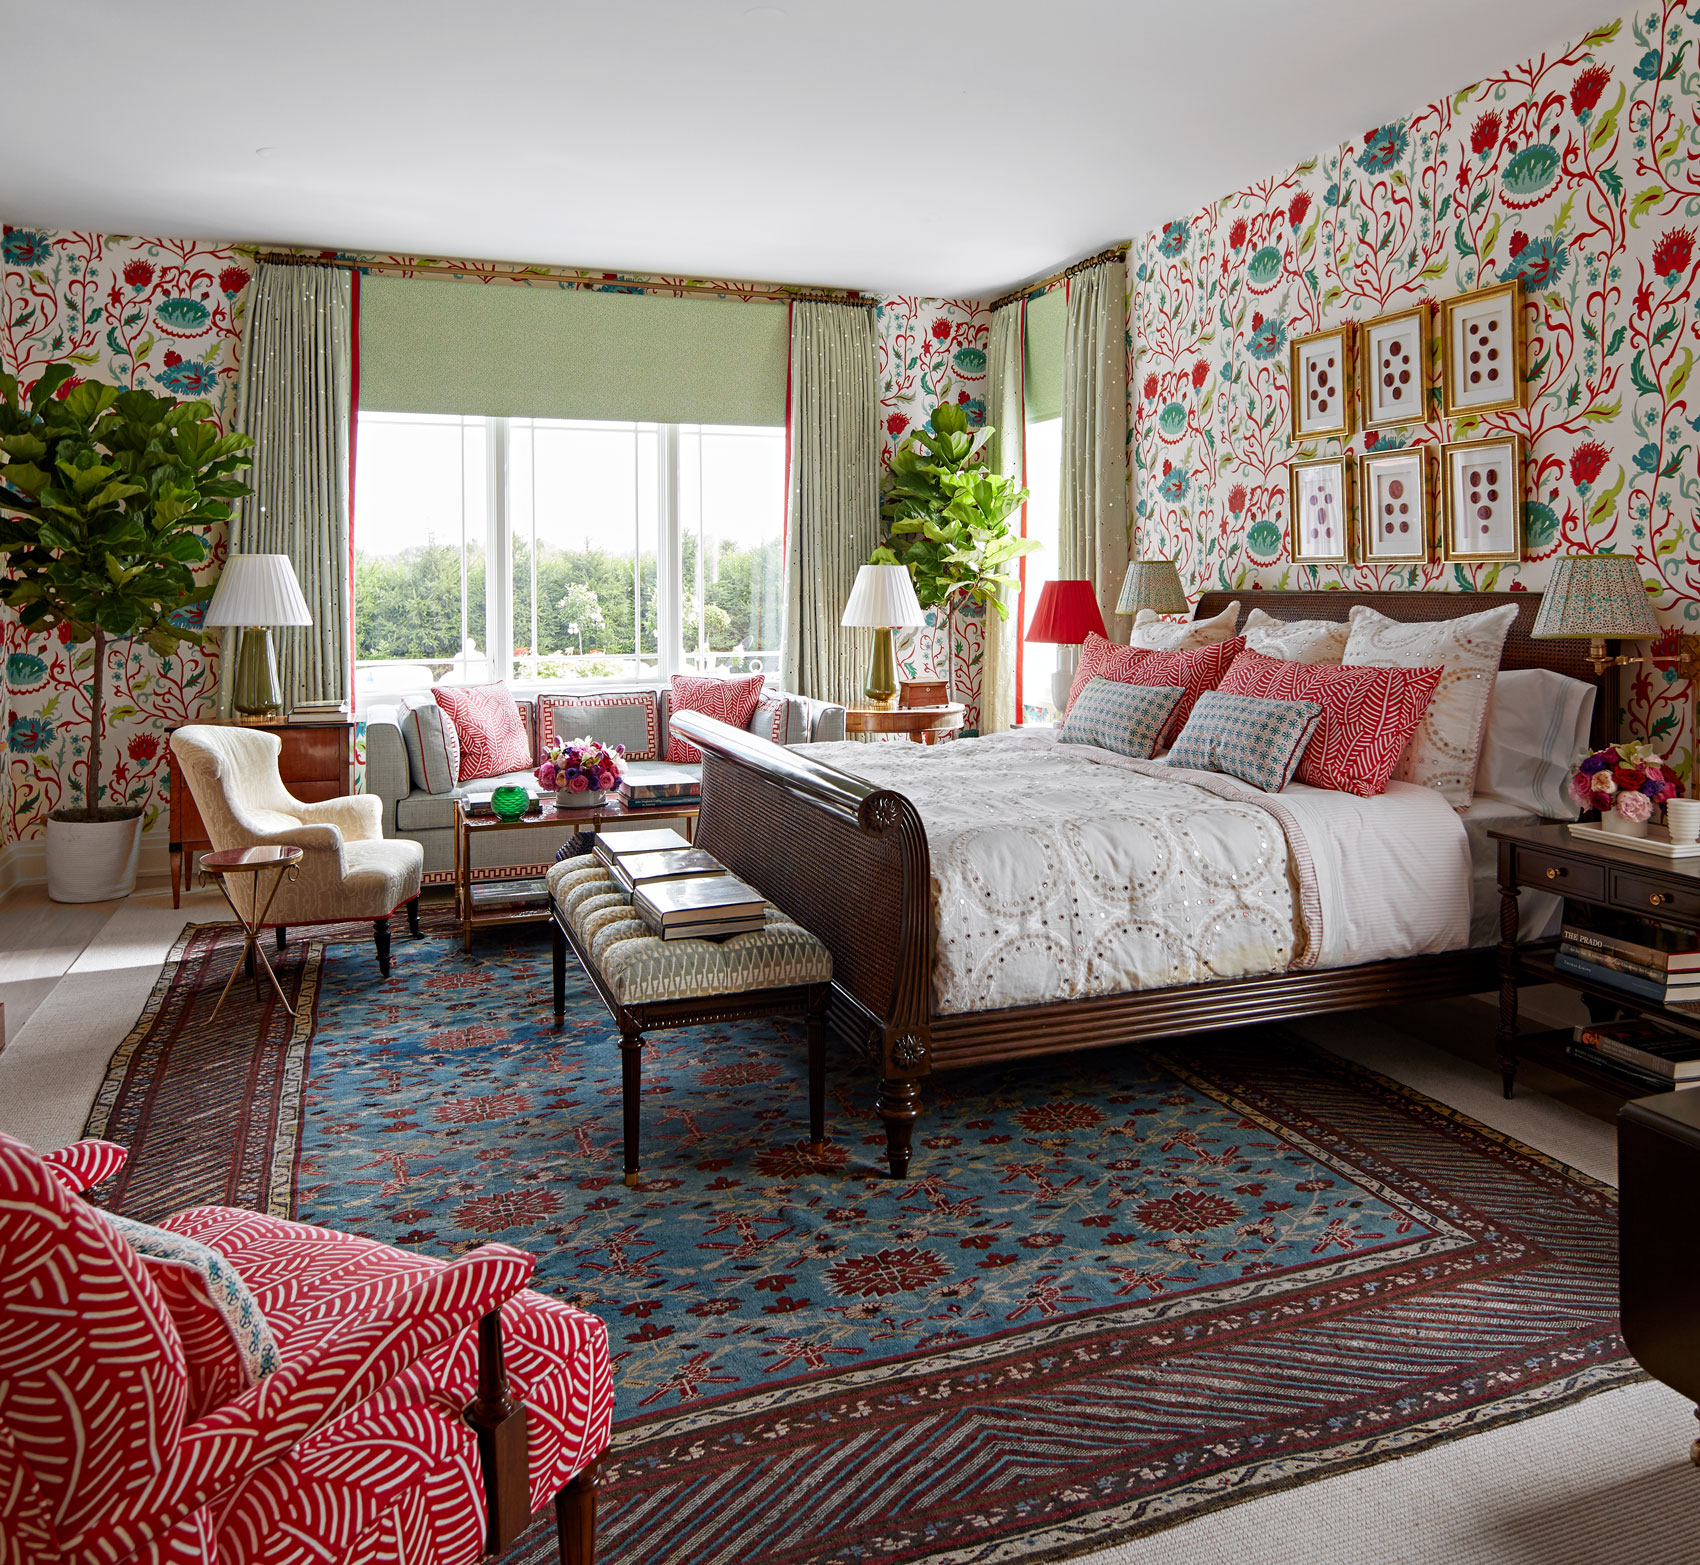 bedroom with seating area and colorful floral wallaper